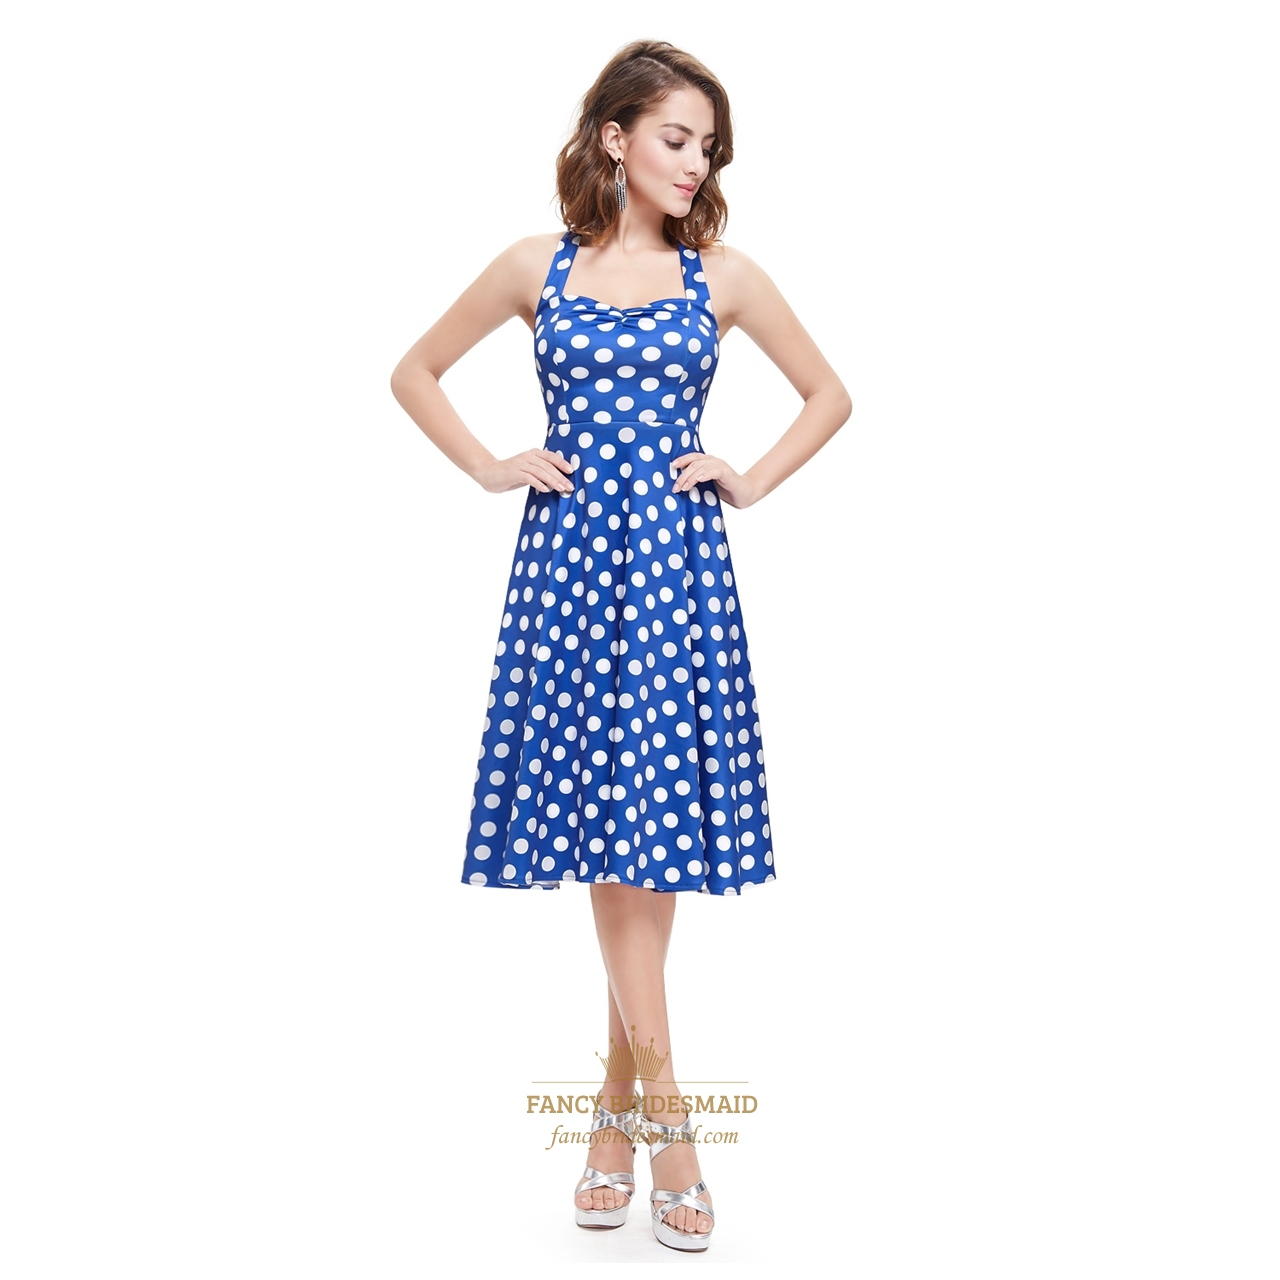 629e323df6864 Blue And White Halter Knee Length Polka Dot Sleeveless Summer Dress SKU  -AP014